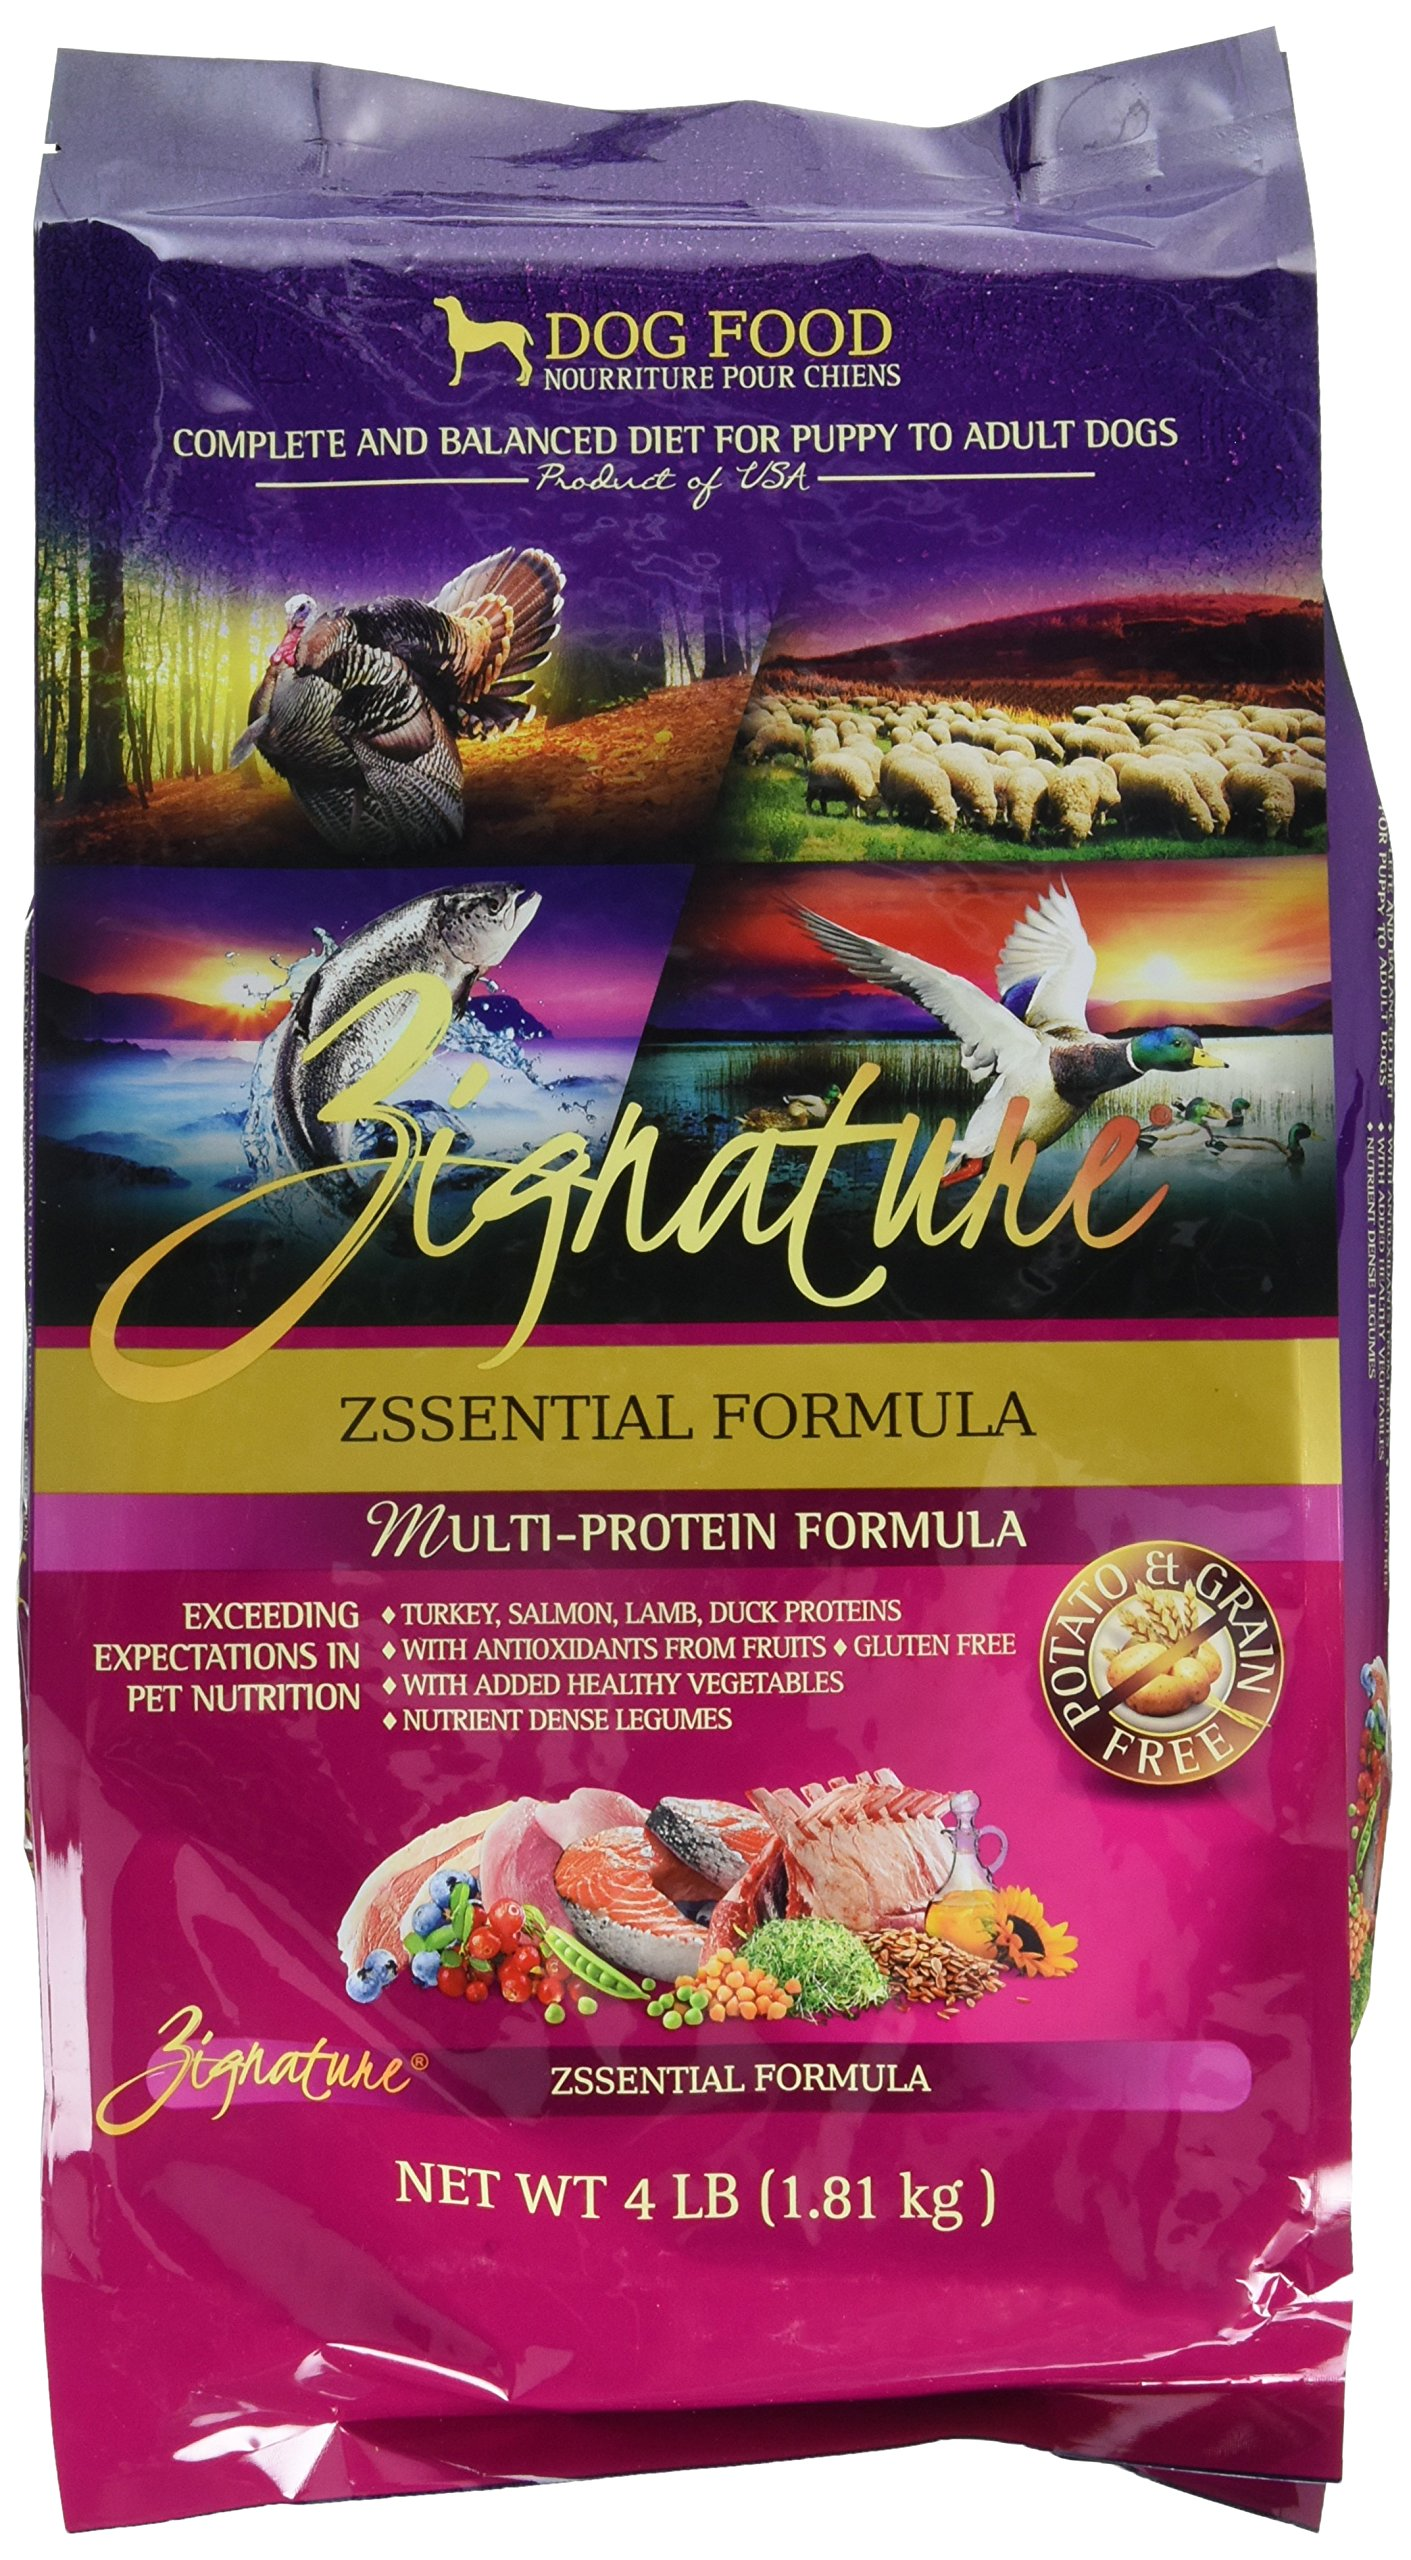 Zignature Zssential Formula Dog Food, 4 lb.